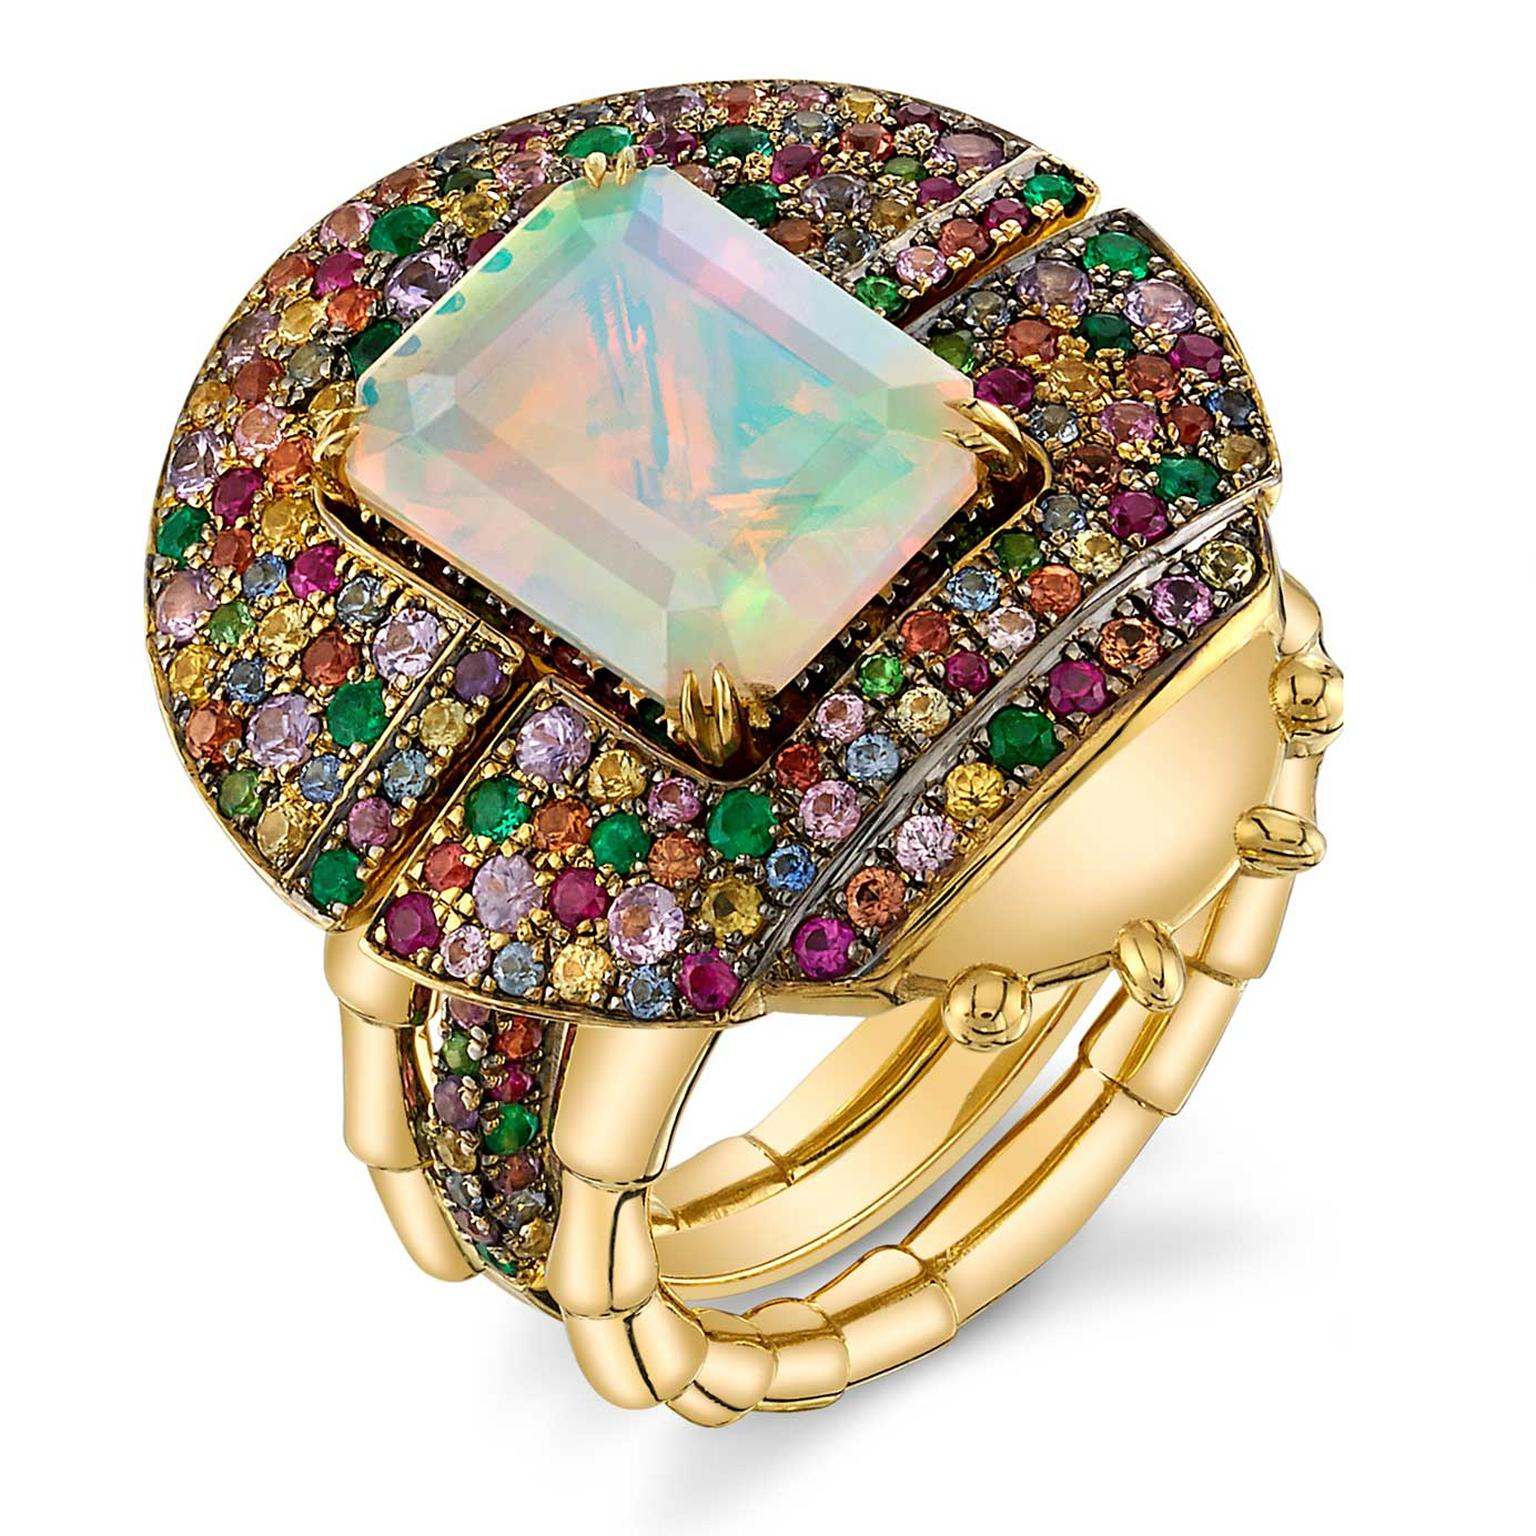 Daniela Villegas adaptable ring with opal